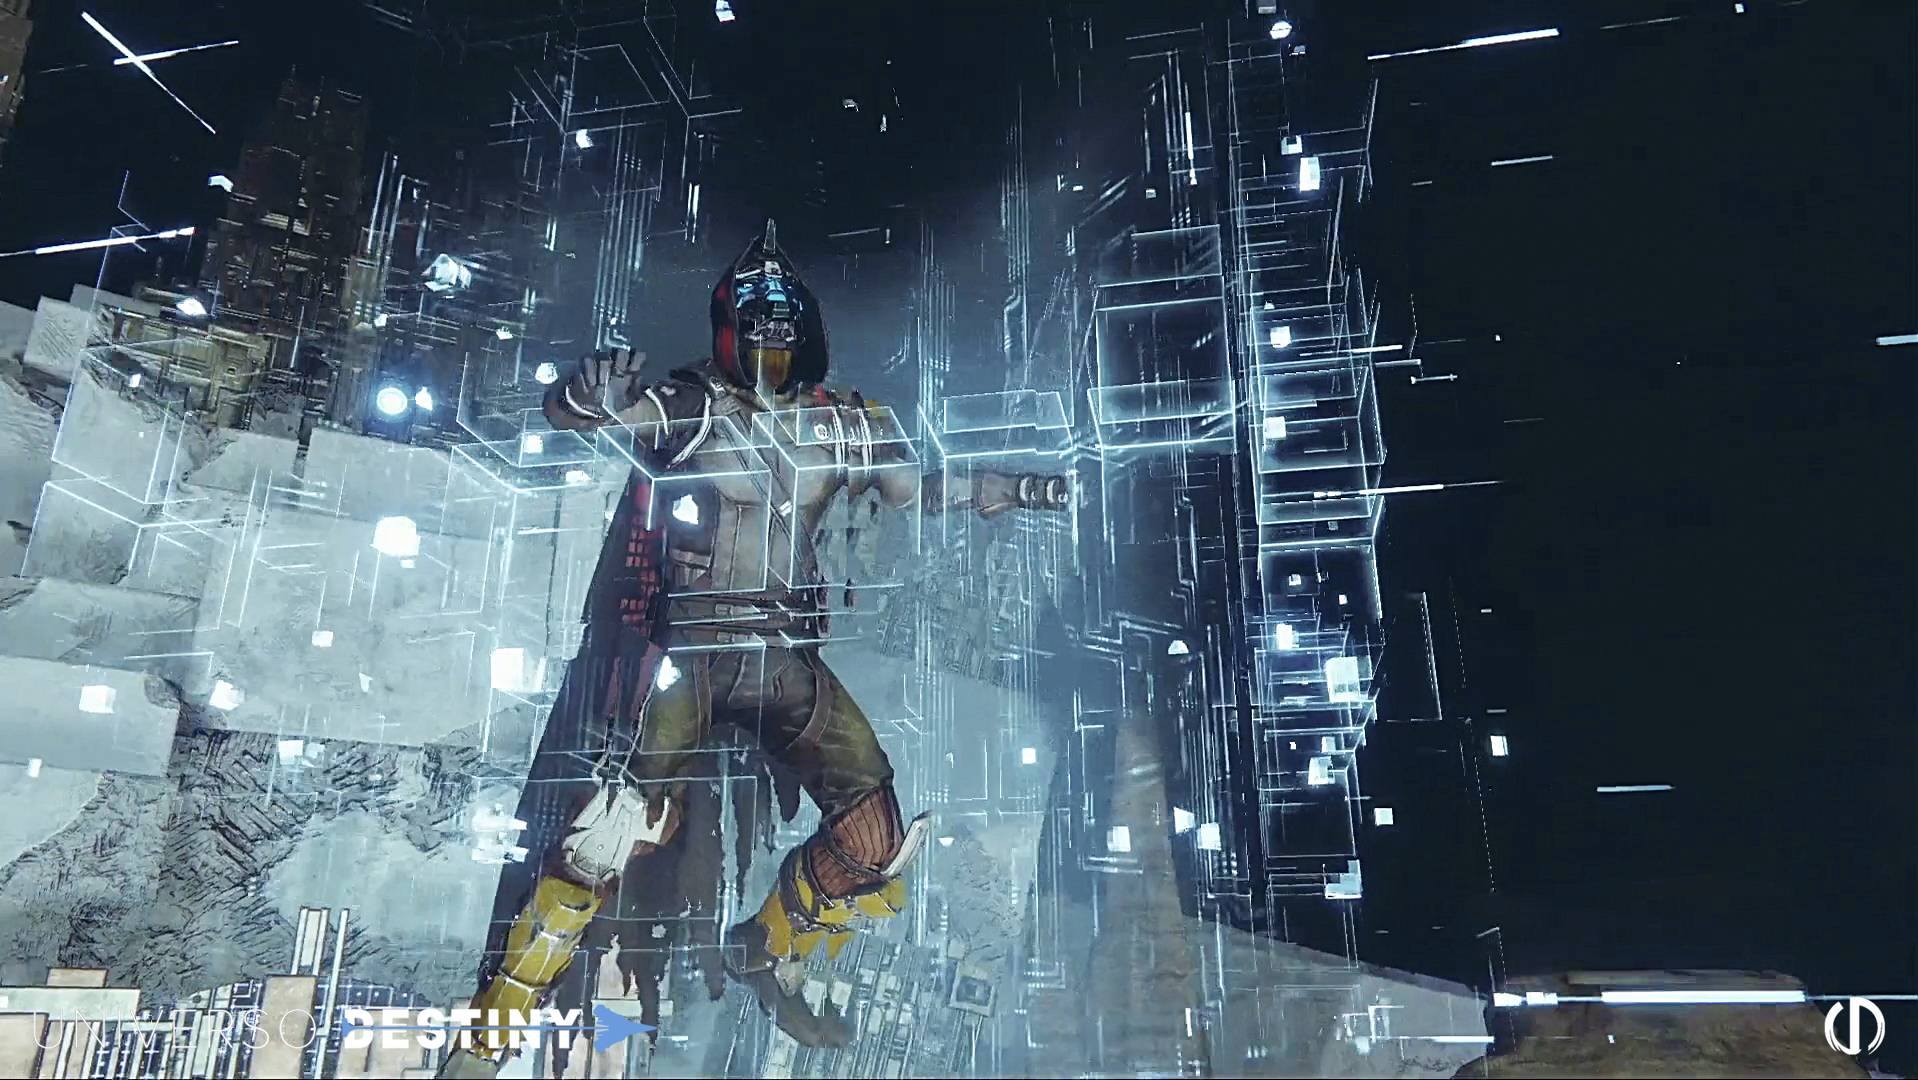 destiny heroic matchmaking Find out more about mercury and beyond from the first destiny 2 dlc stream destiny 2: curse of osiris dlc introduces a new raid lair - and heroic strikes are back by connor and don't say nightfall already does that, because there's only one per week and it doesn't allow standard matchmaking.